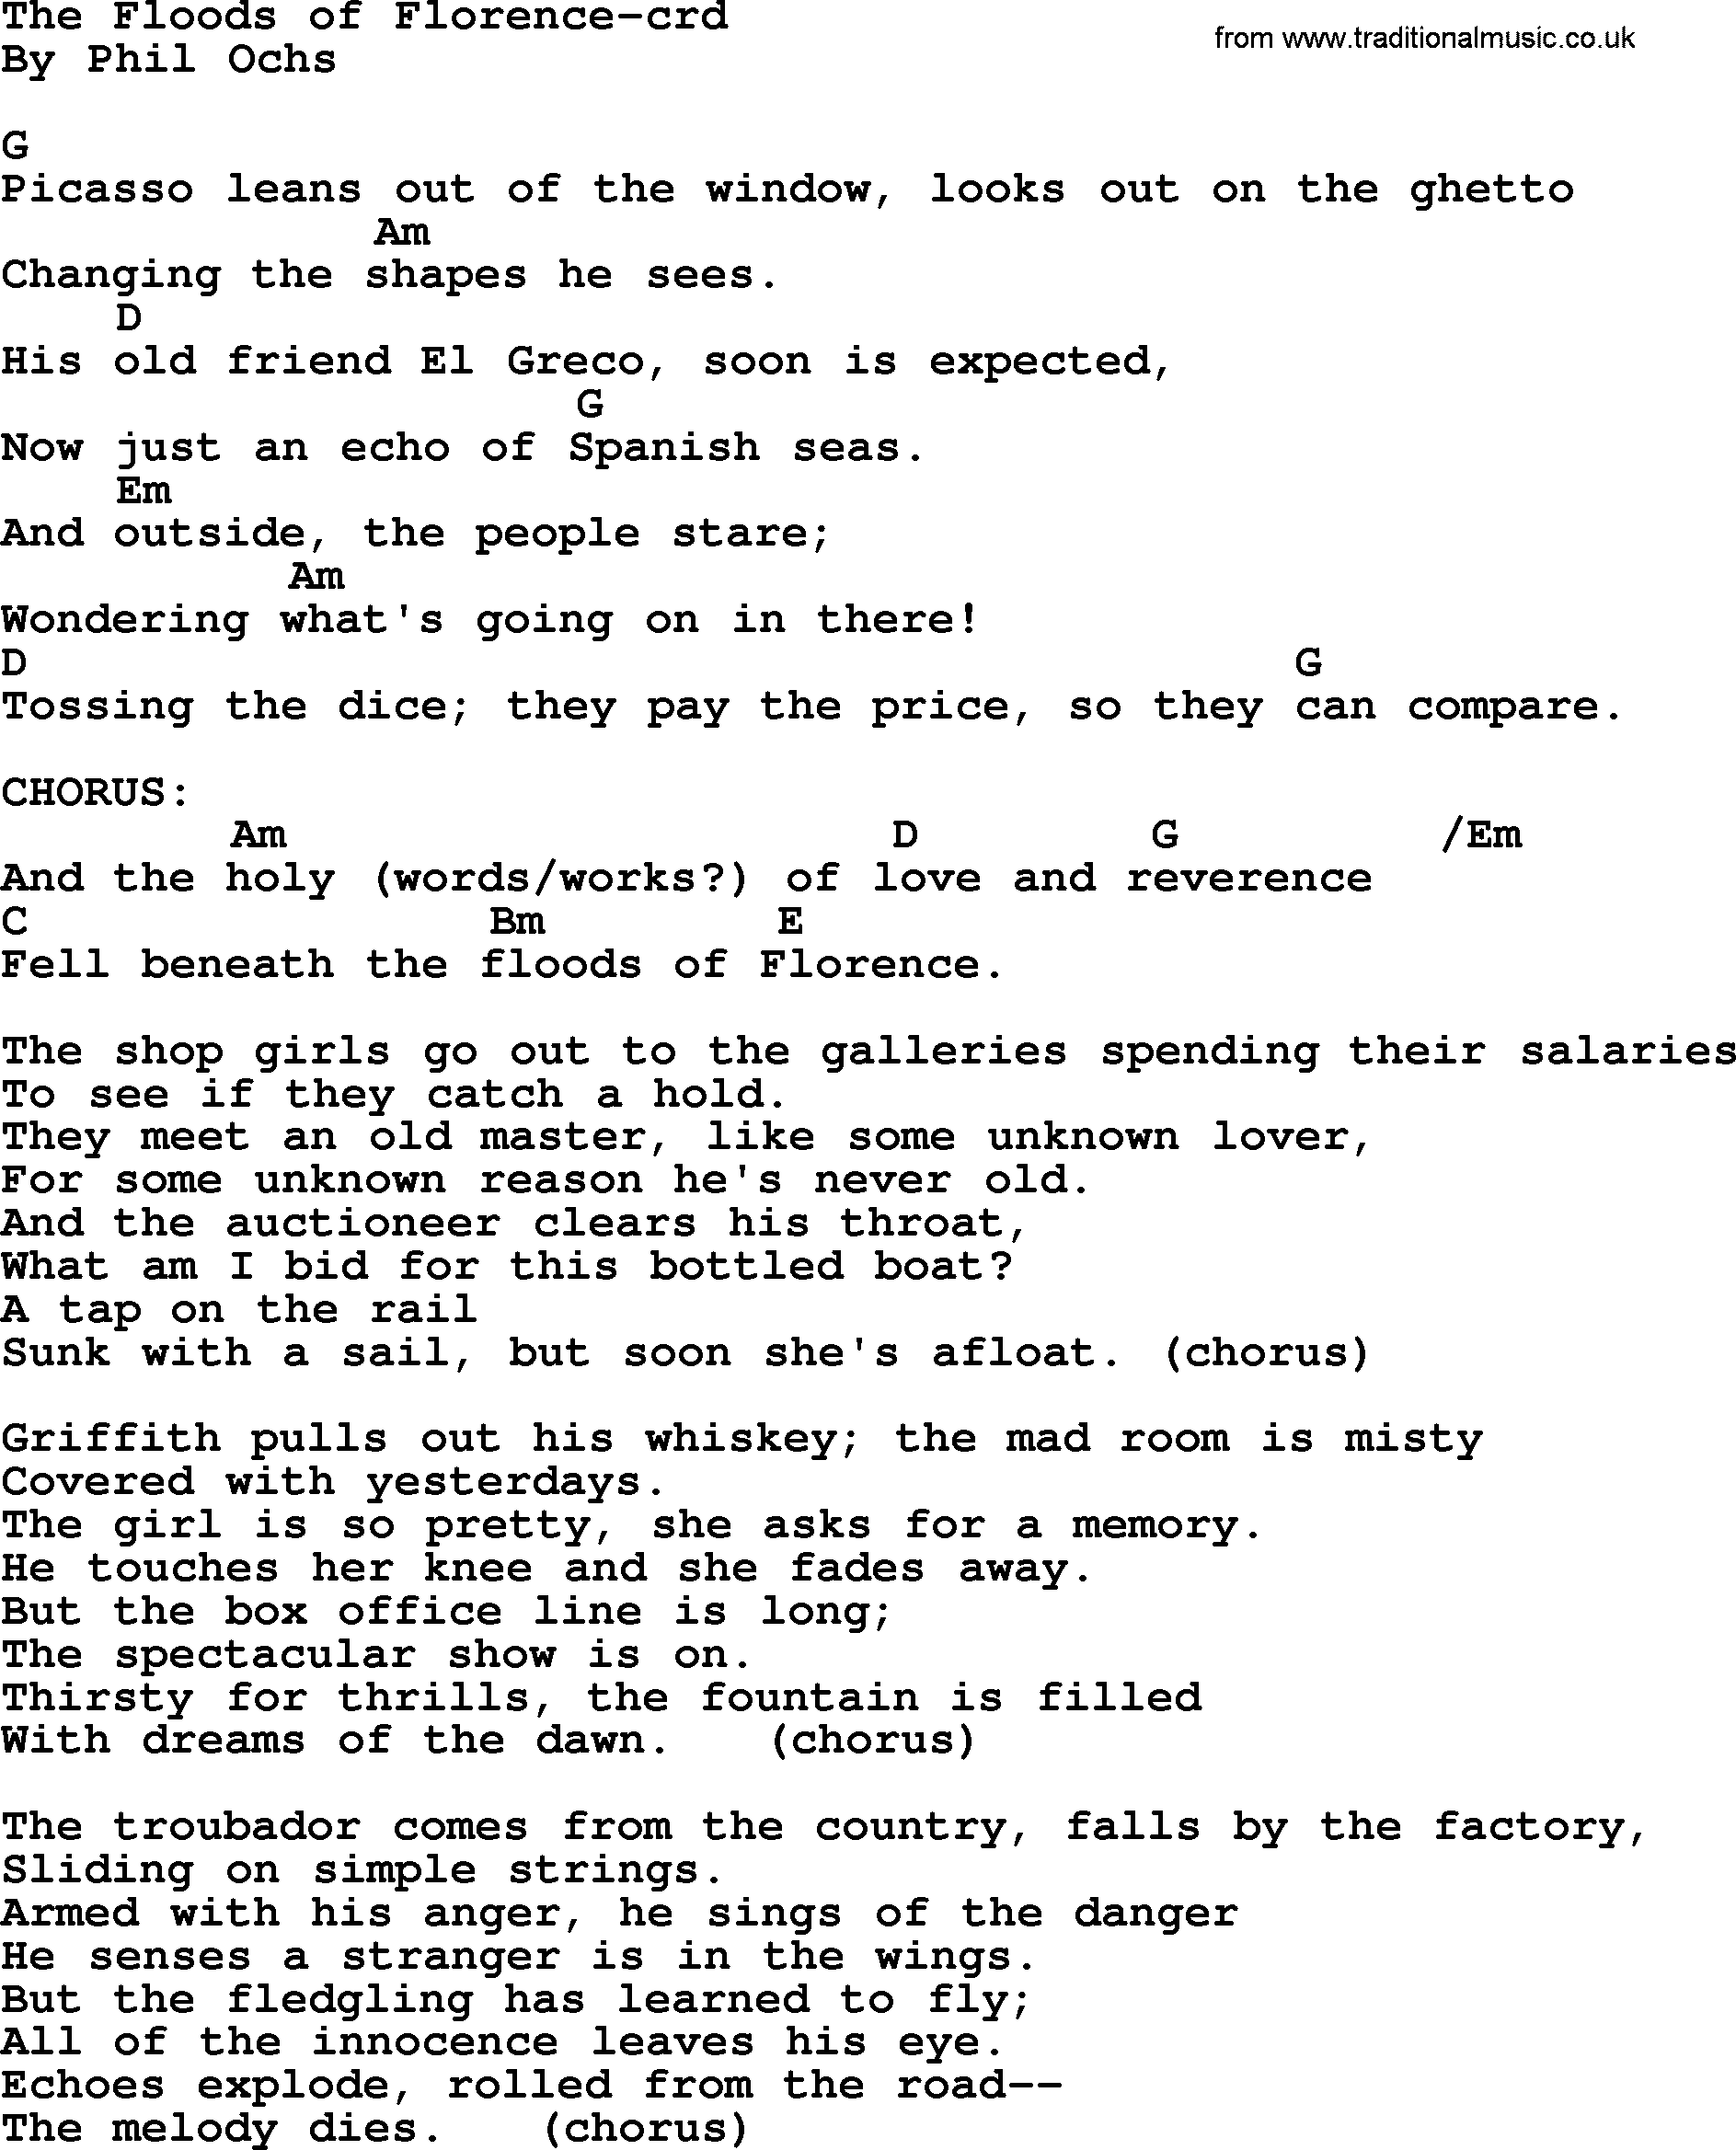 Phil ochs song the floods of florence lyrics and chords phil ochs song the floods of florence by phil ochs lyrics and chords hexwebz Images